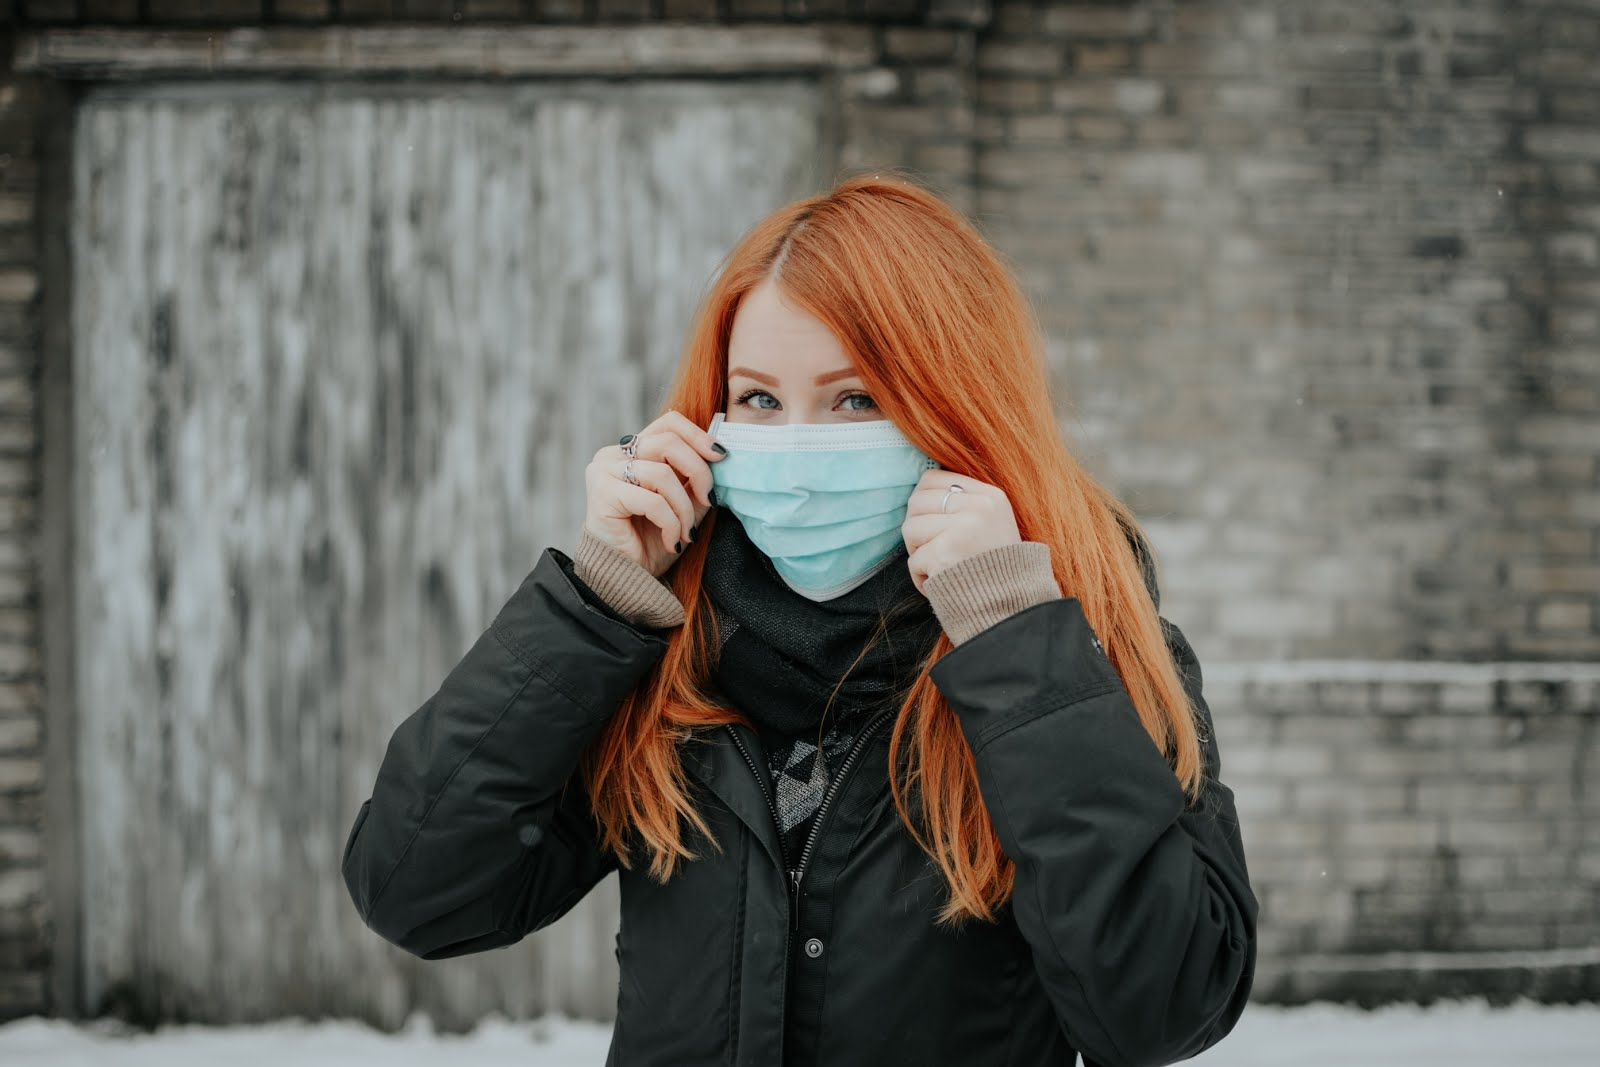 The İmportance Of Wearing A Mask Against Coronavirus Has Proved To Be Refractable